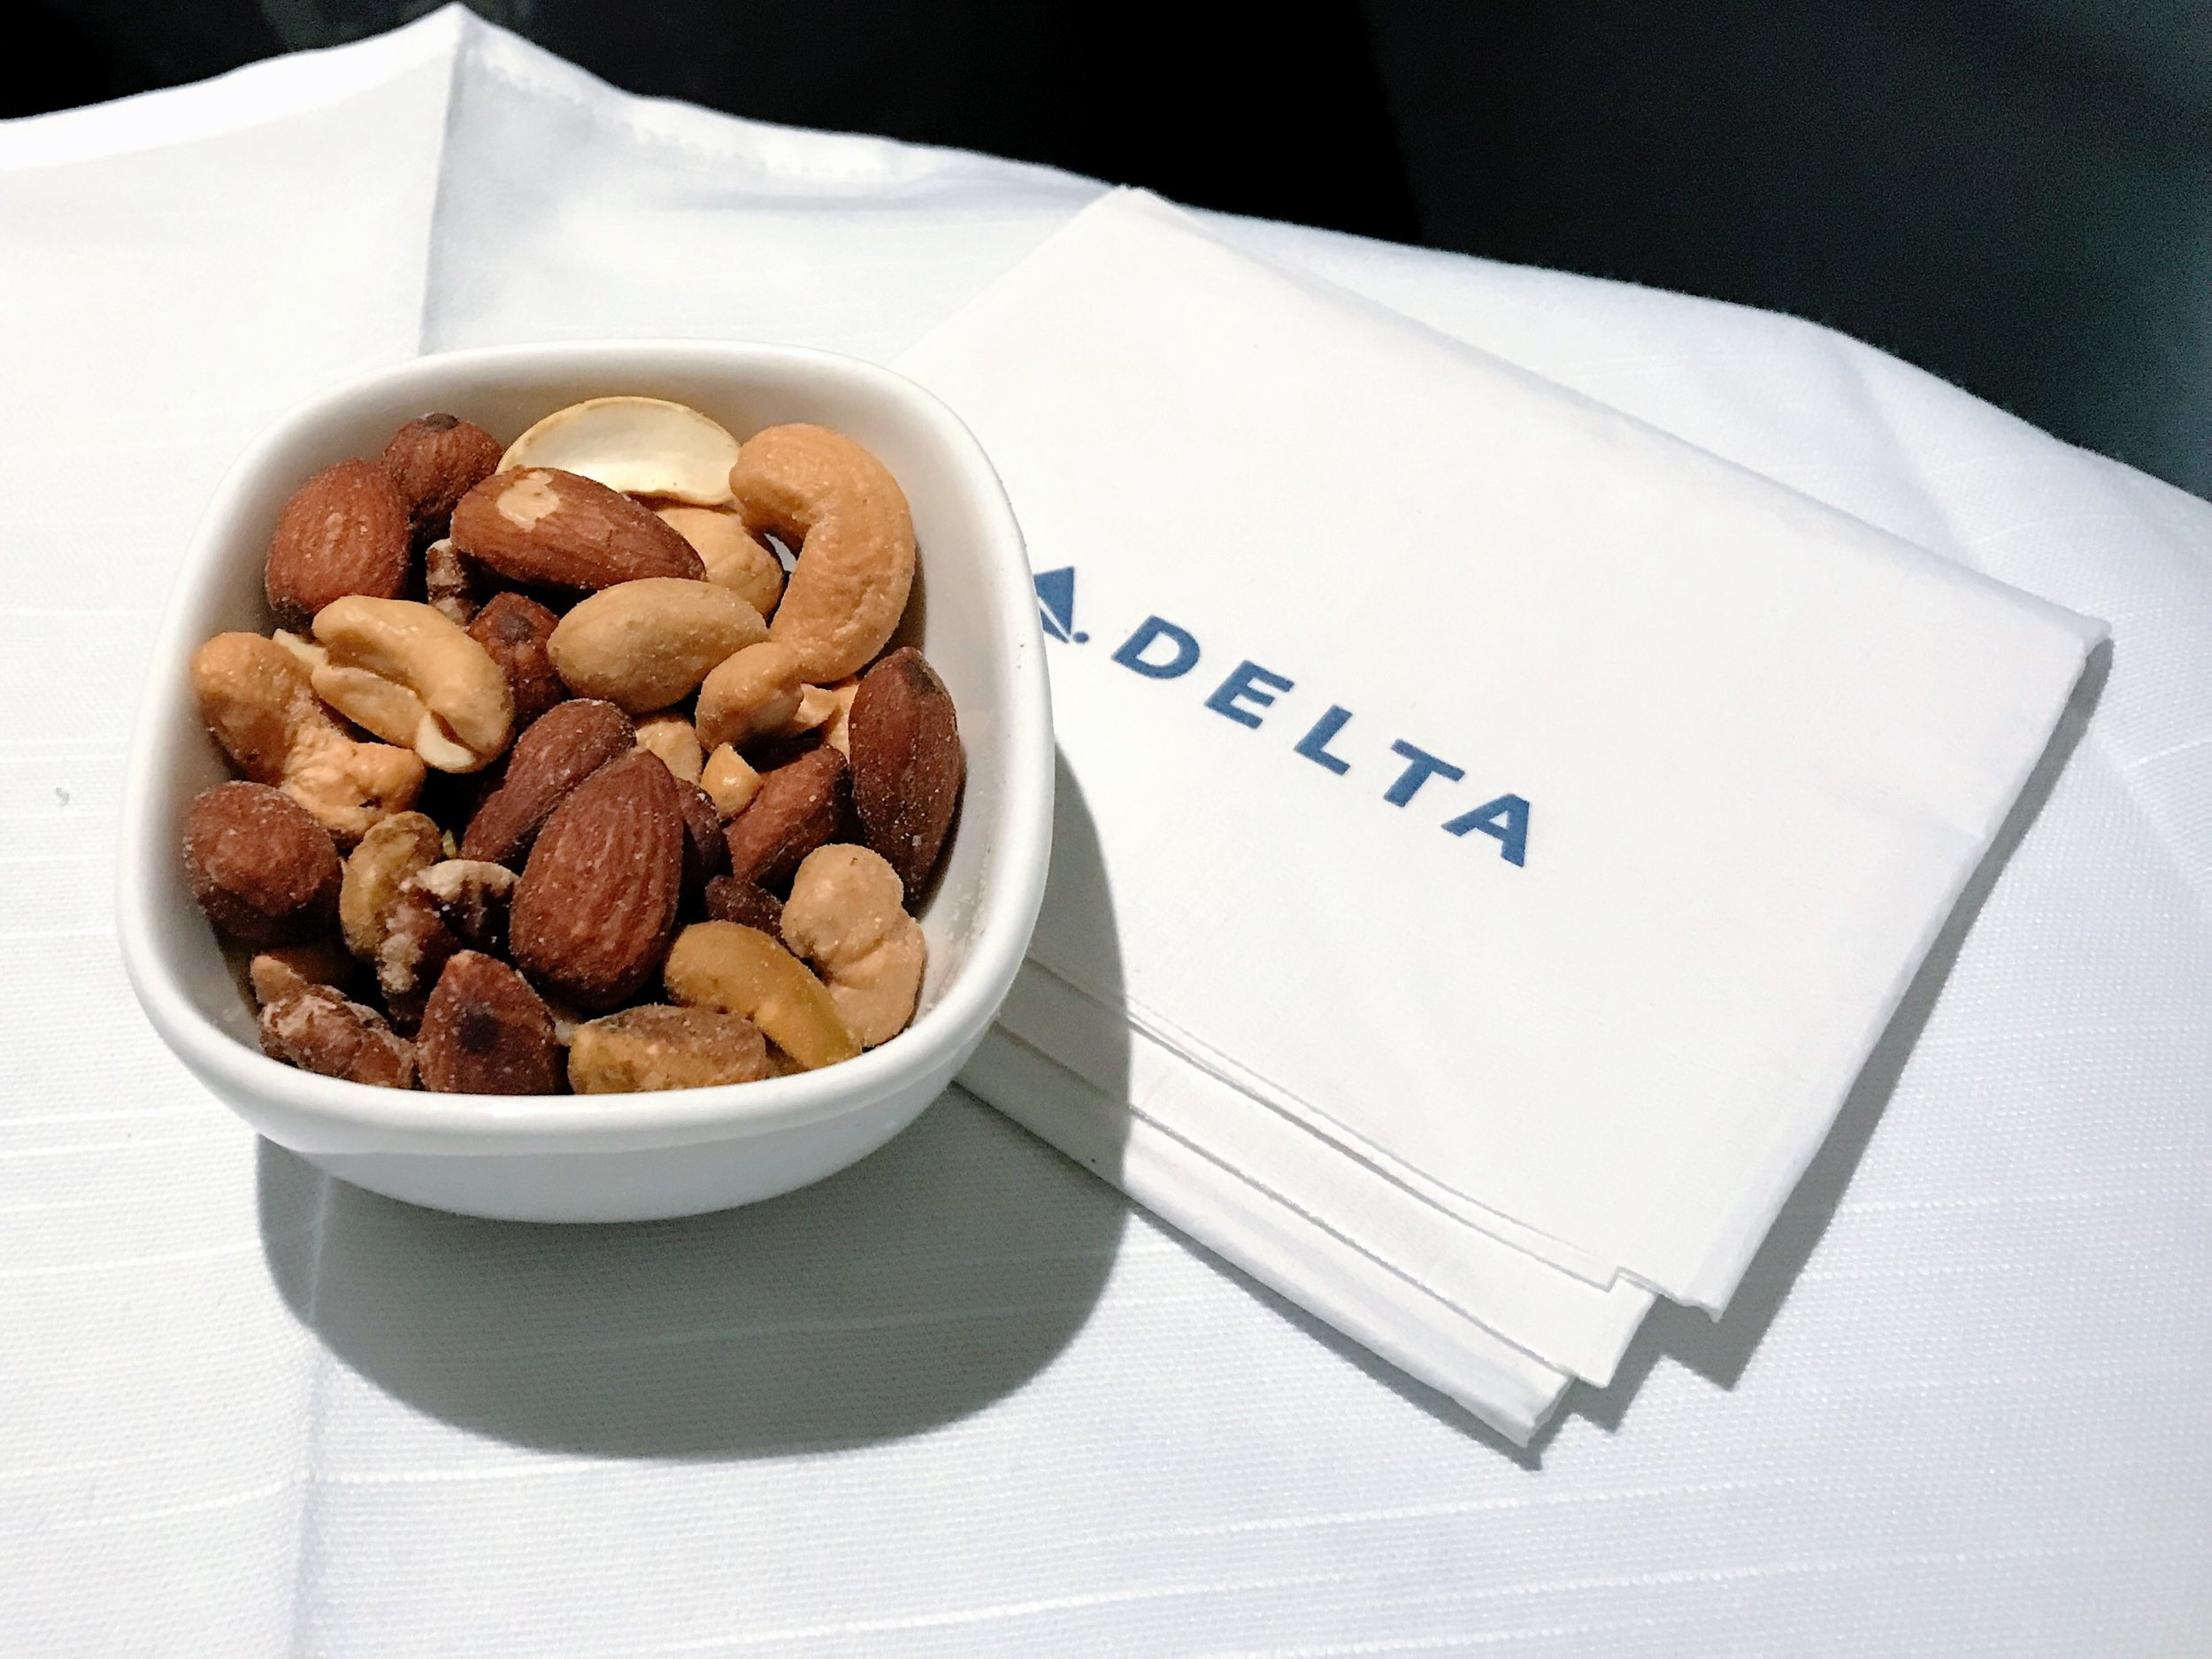 Warm nuts were served before the five-course meal.